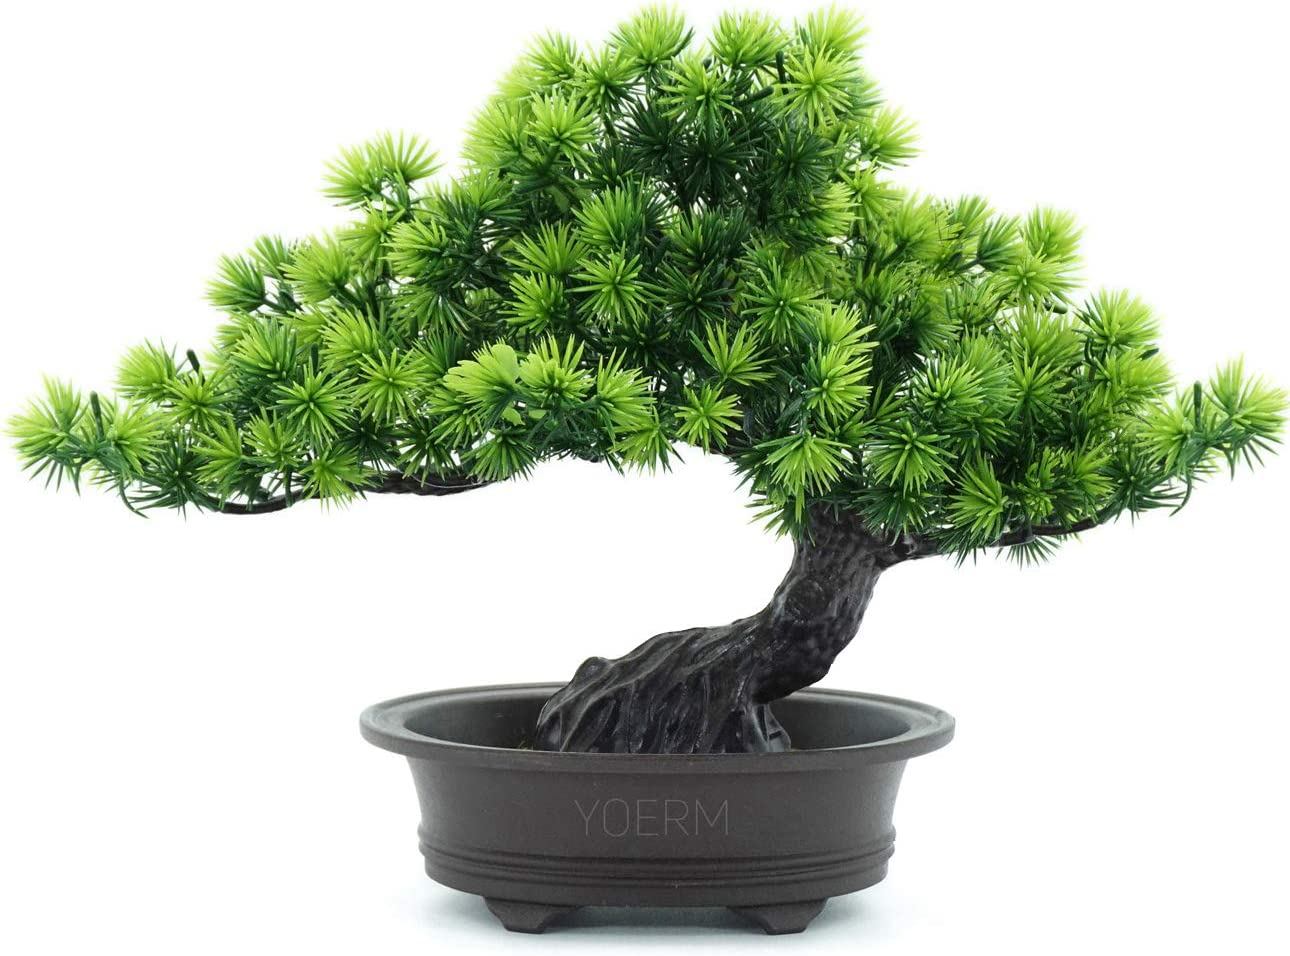 "yoerm Artificial Japanese Juniper Bonsai Tree Height 9.5"" for Home Office Indoor Decor"